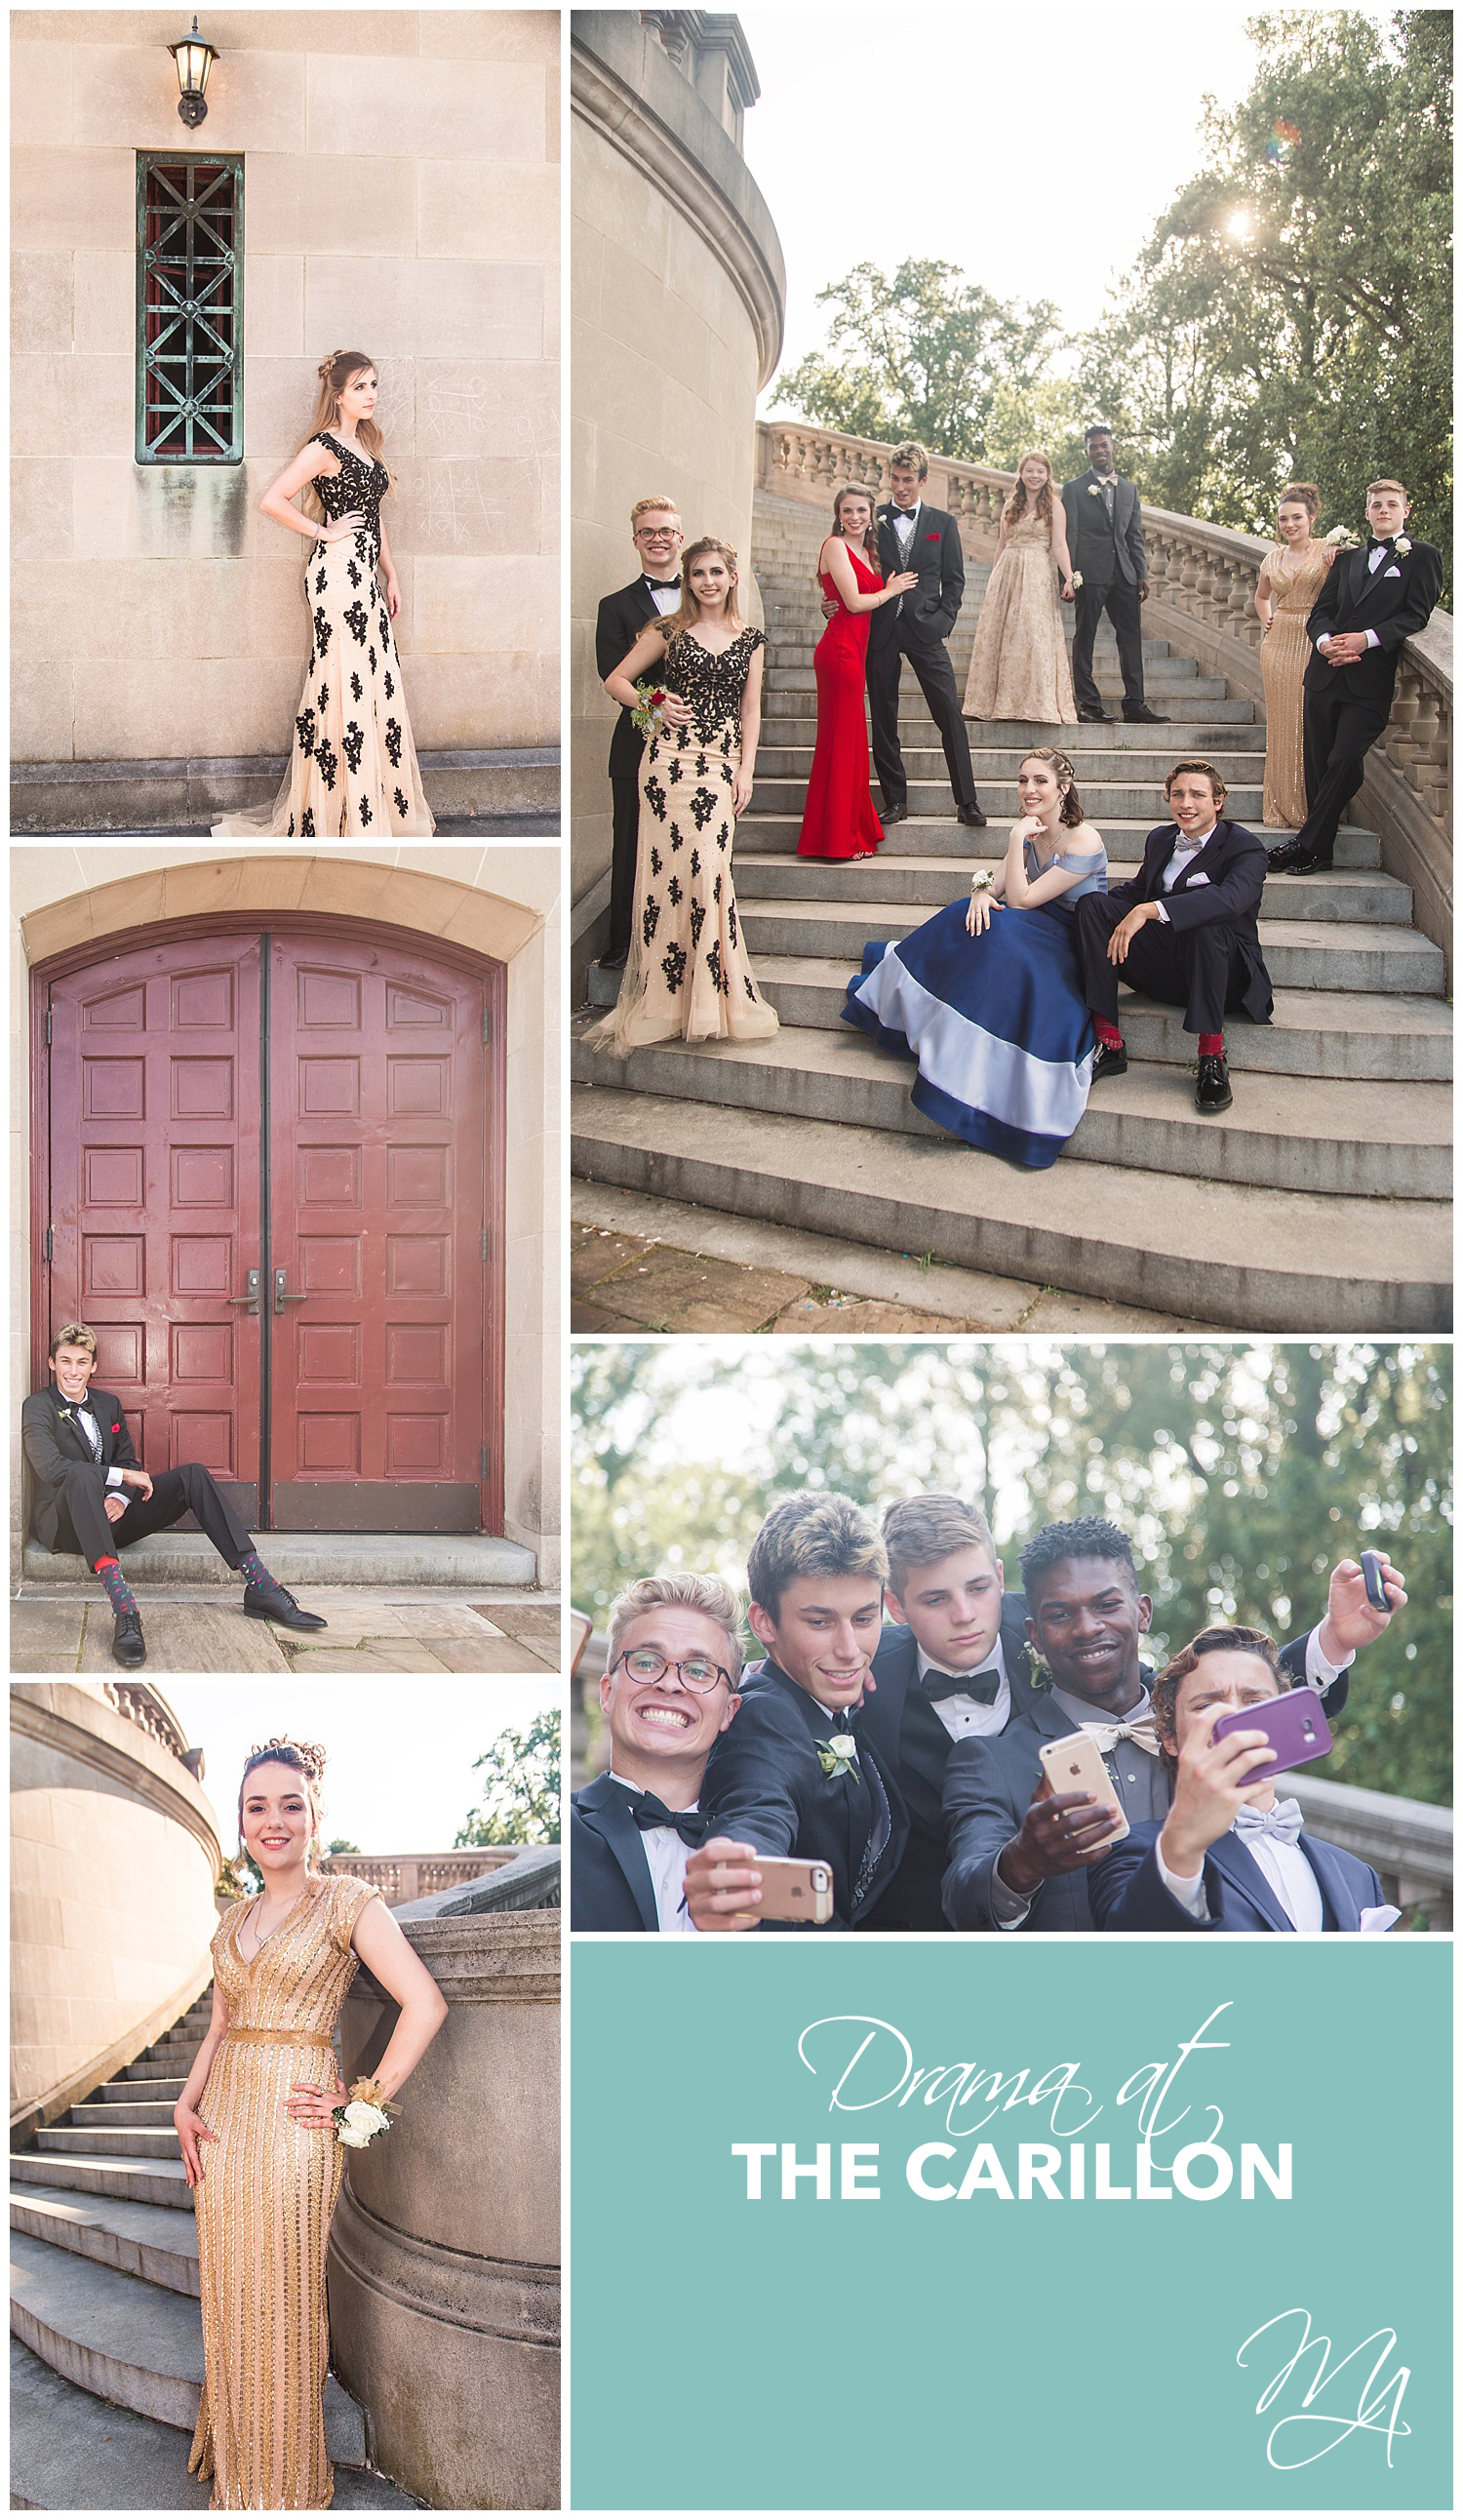 Dramatic Prom Pictures - Carillon Portraits - Marshall Arts Photography